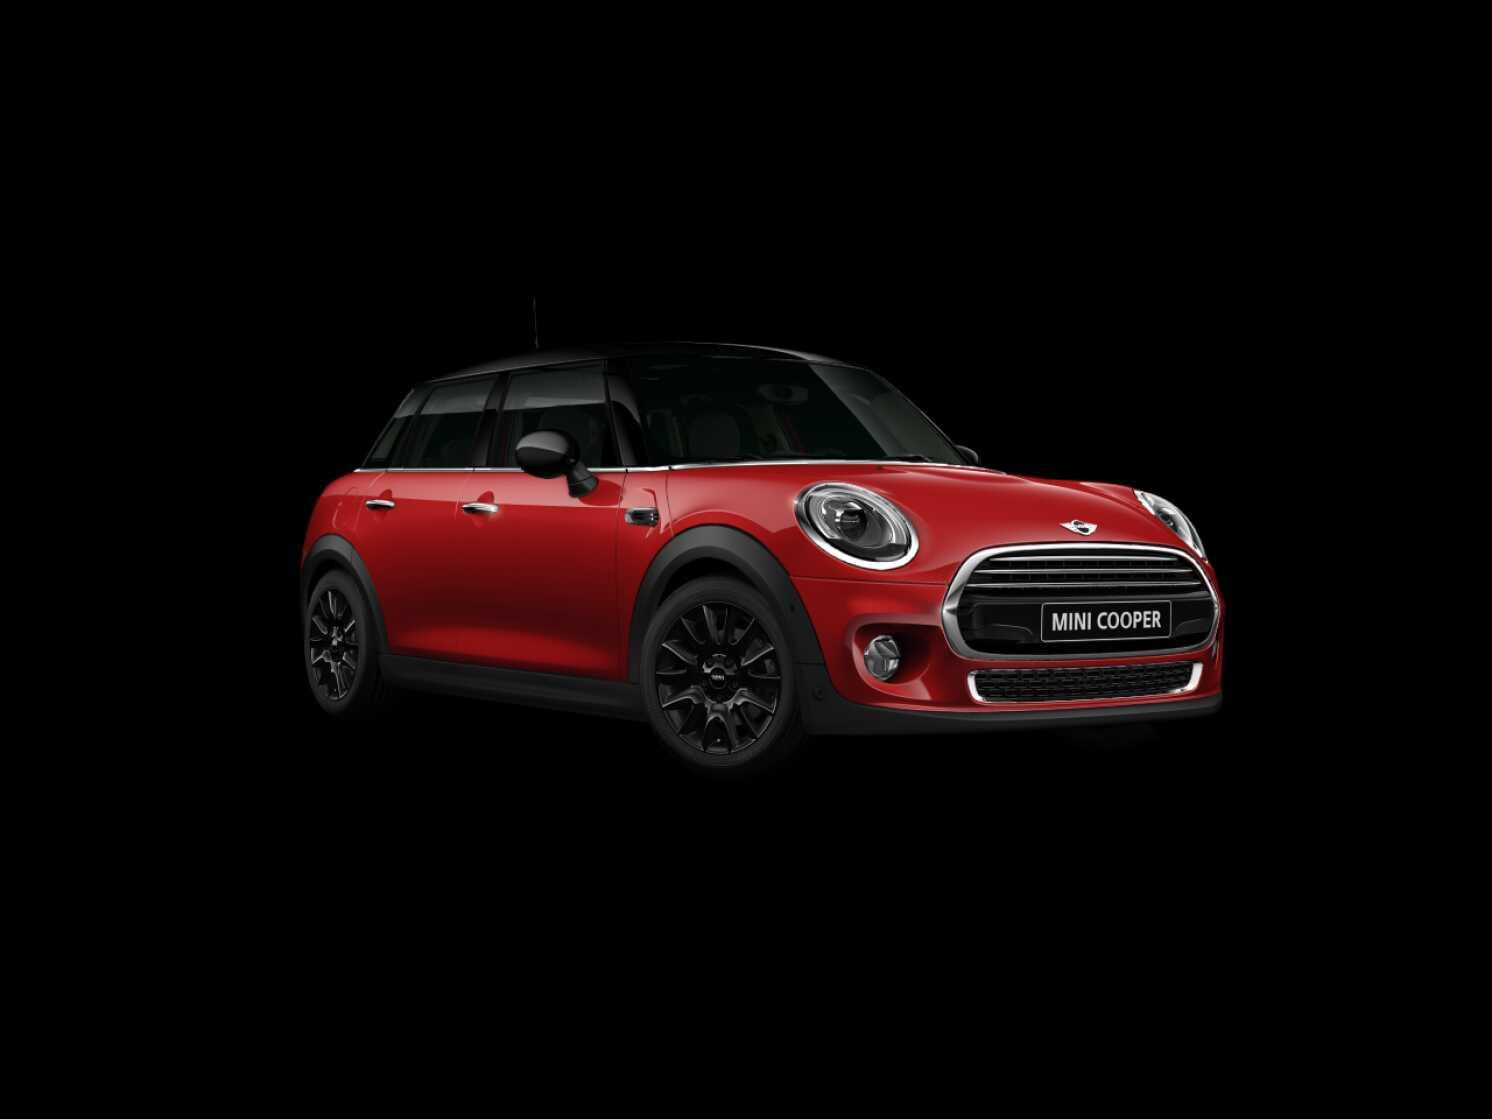 mini cooper f55 1 5l 136 ch pr sentation cooper mini forum marques. Black Bedroom Furniture Sets. Home Design Ideas